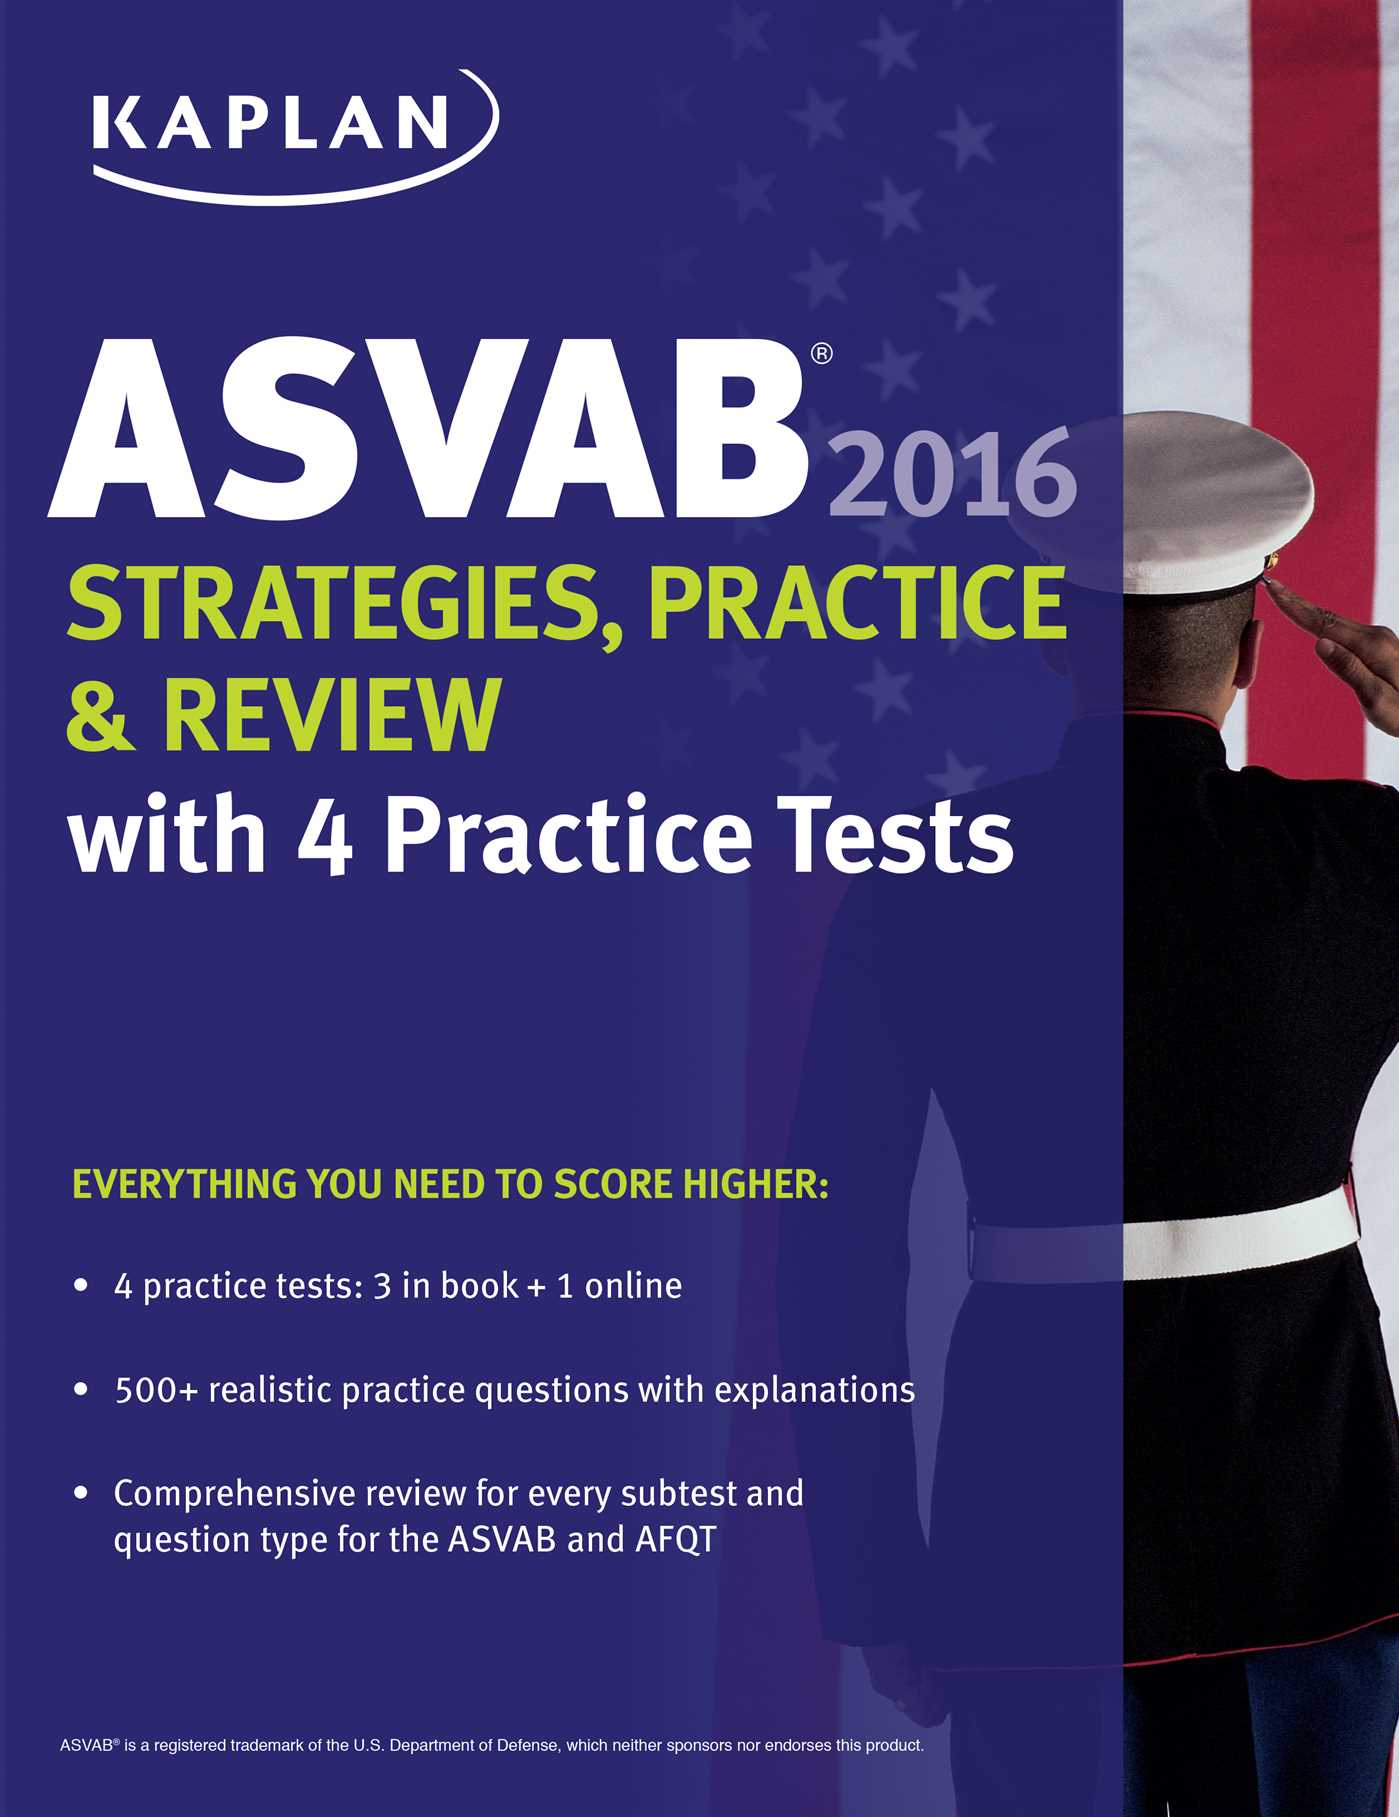 Kaplan Asvab Strategies Practice And Review With 4 Practice Tests Ebook By Kaplan Test